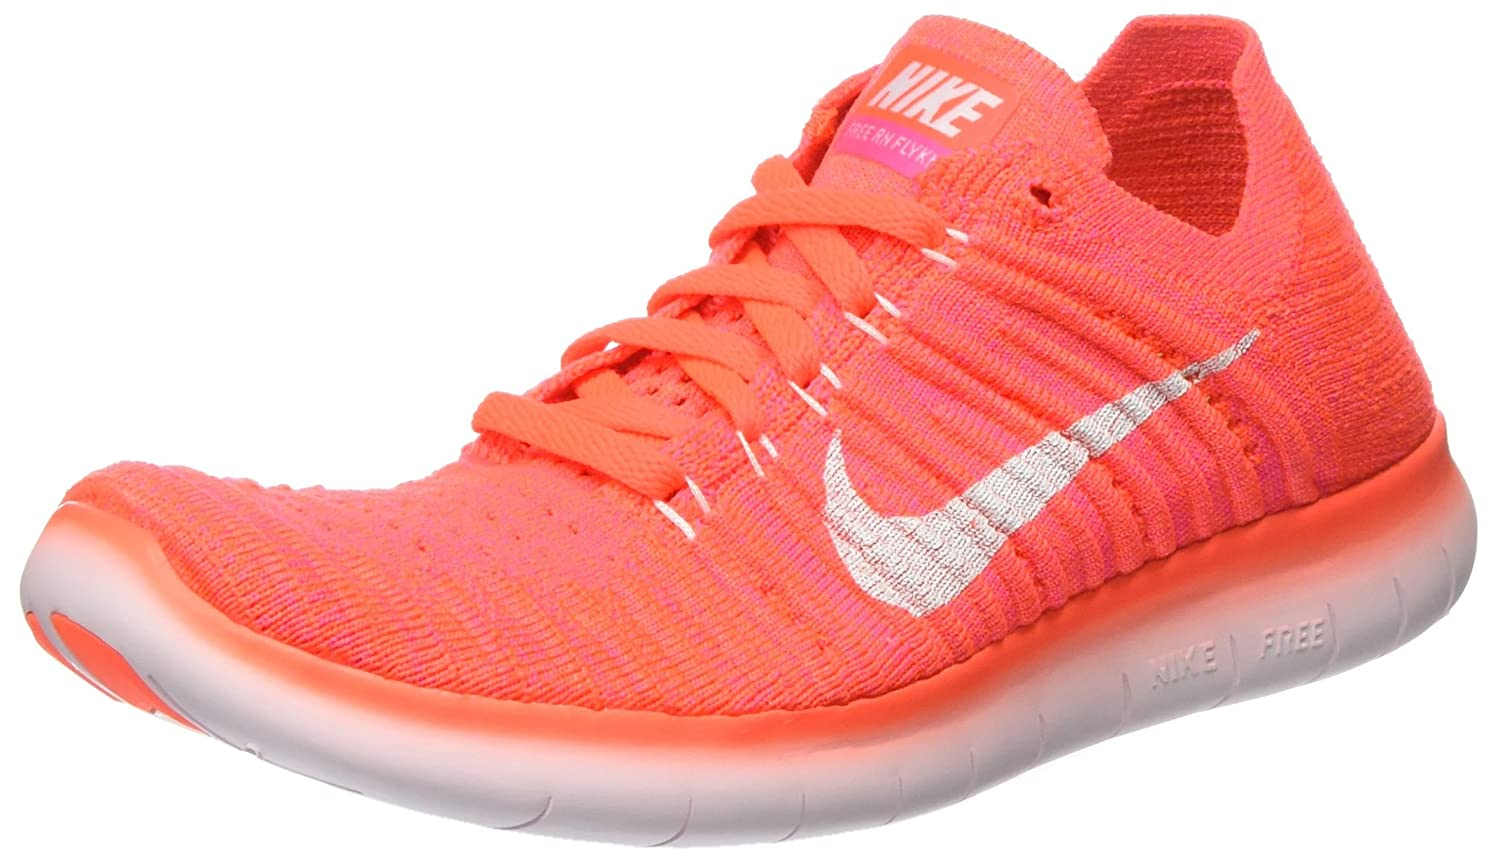 NIKE Women's Running Free RN Flyknit 2017 Running Women's Shoe B01ISLD3J2 7 B(M) US|Hyper Orange/White-total Crimson cd52ab